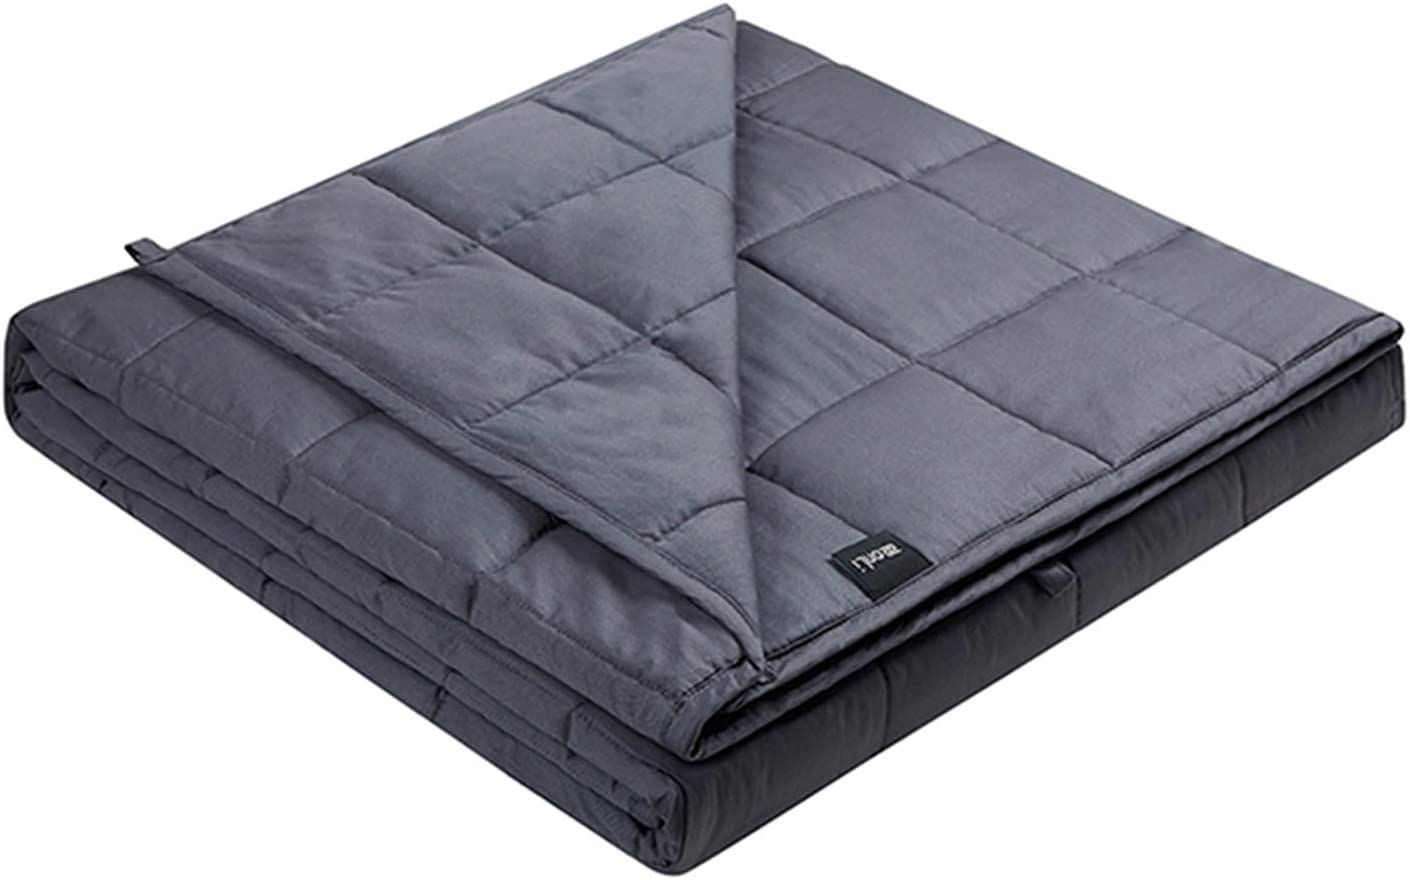 ZonLi Adults Weighted Blanket 20 lbs(60''x80'', Grey, Queen Size), Cooling Weighted Blanket for Adult, 100% Cotton Material with Glass Beads: Home & Kitchen